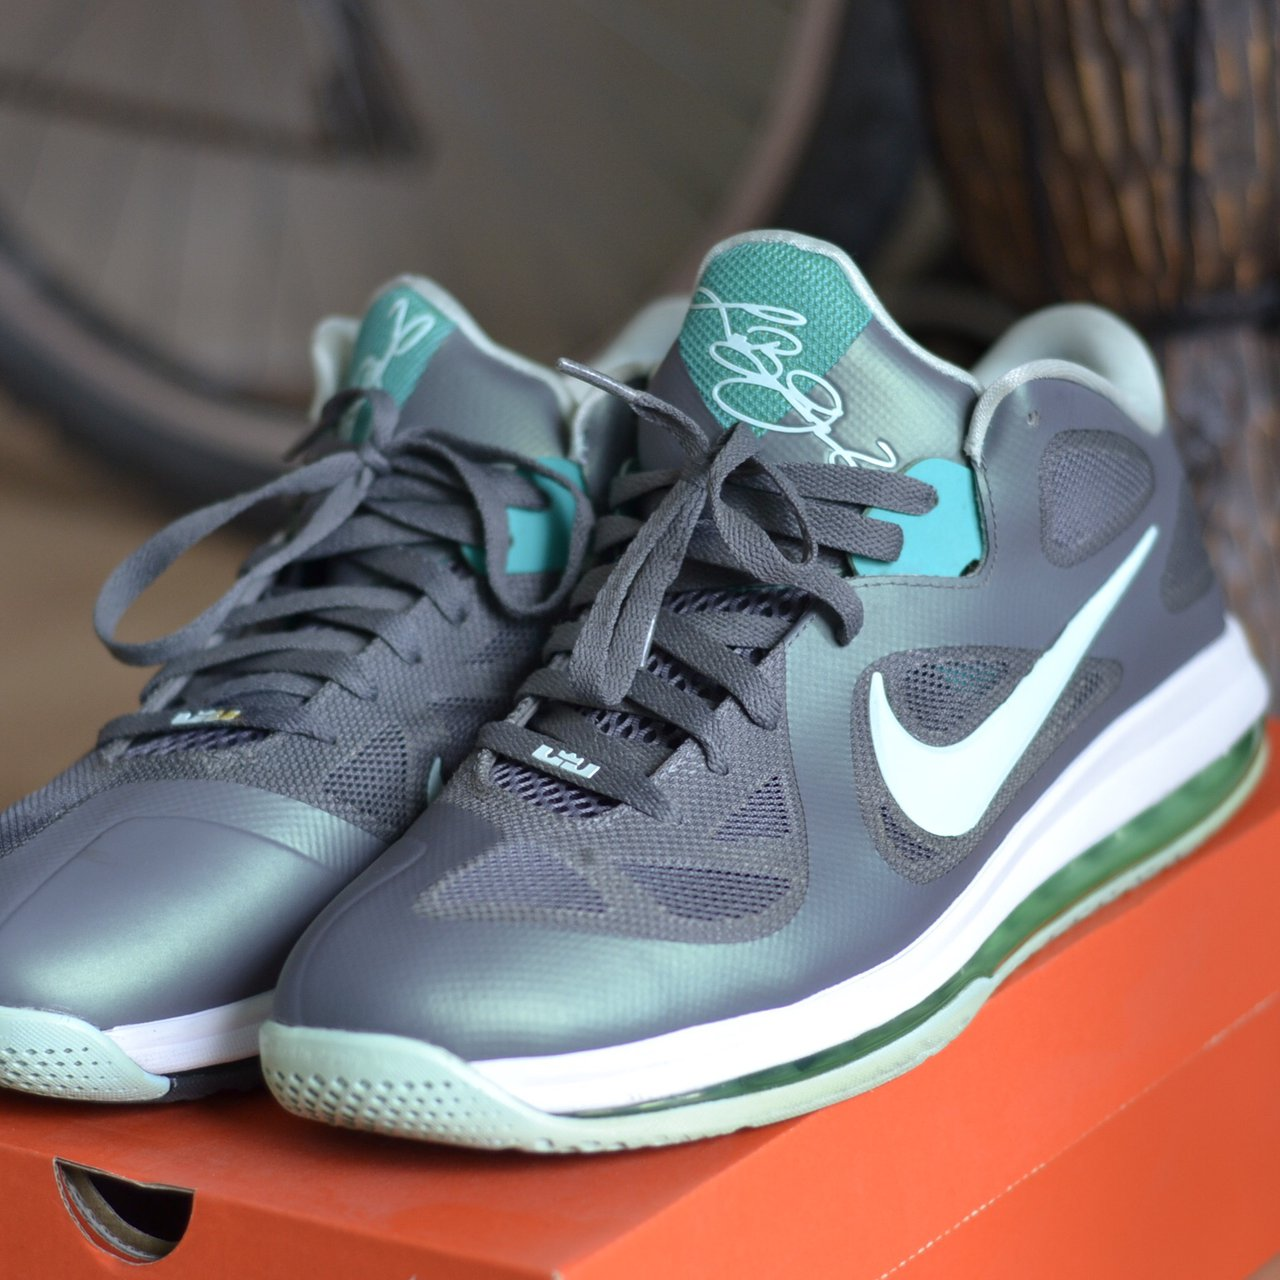 1c7bbcc3d9583 Nike air LeBron 9 low mint green  grey Size  UK 10 EUR 45 - Depop